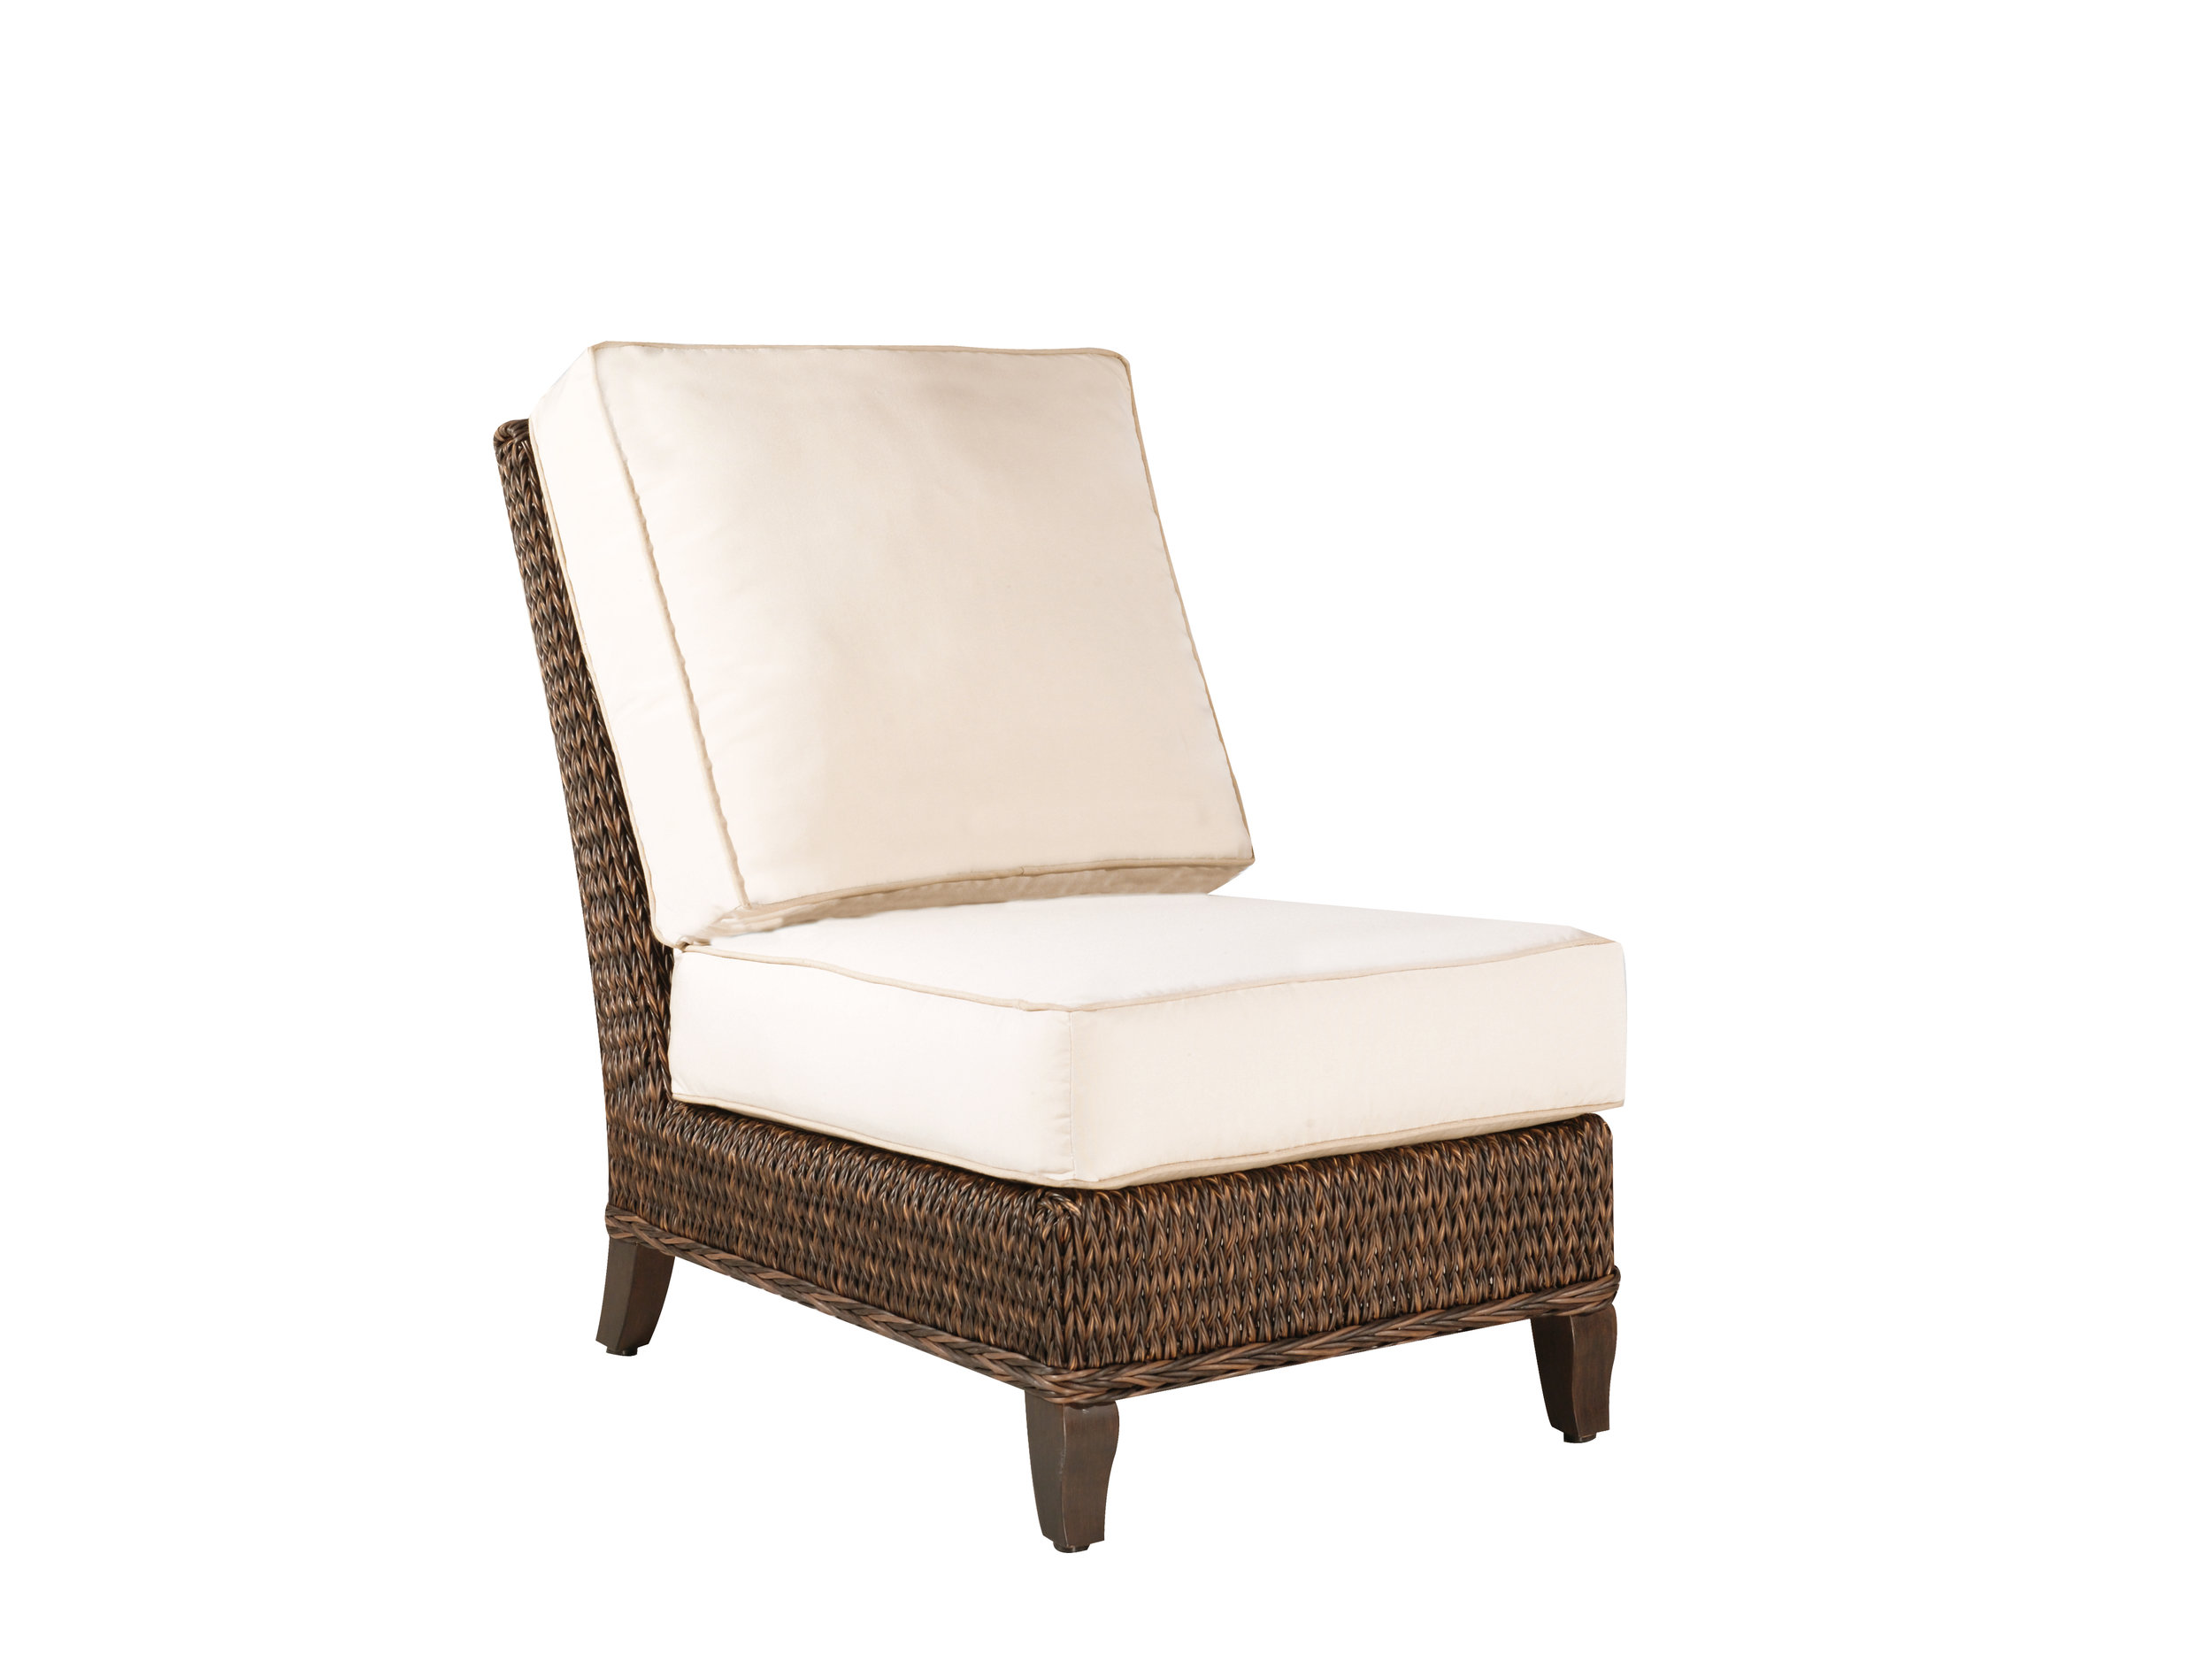 "973031A Monticello Armless Chair   26"" x 40.2"" x 36.2"""